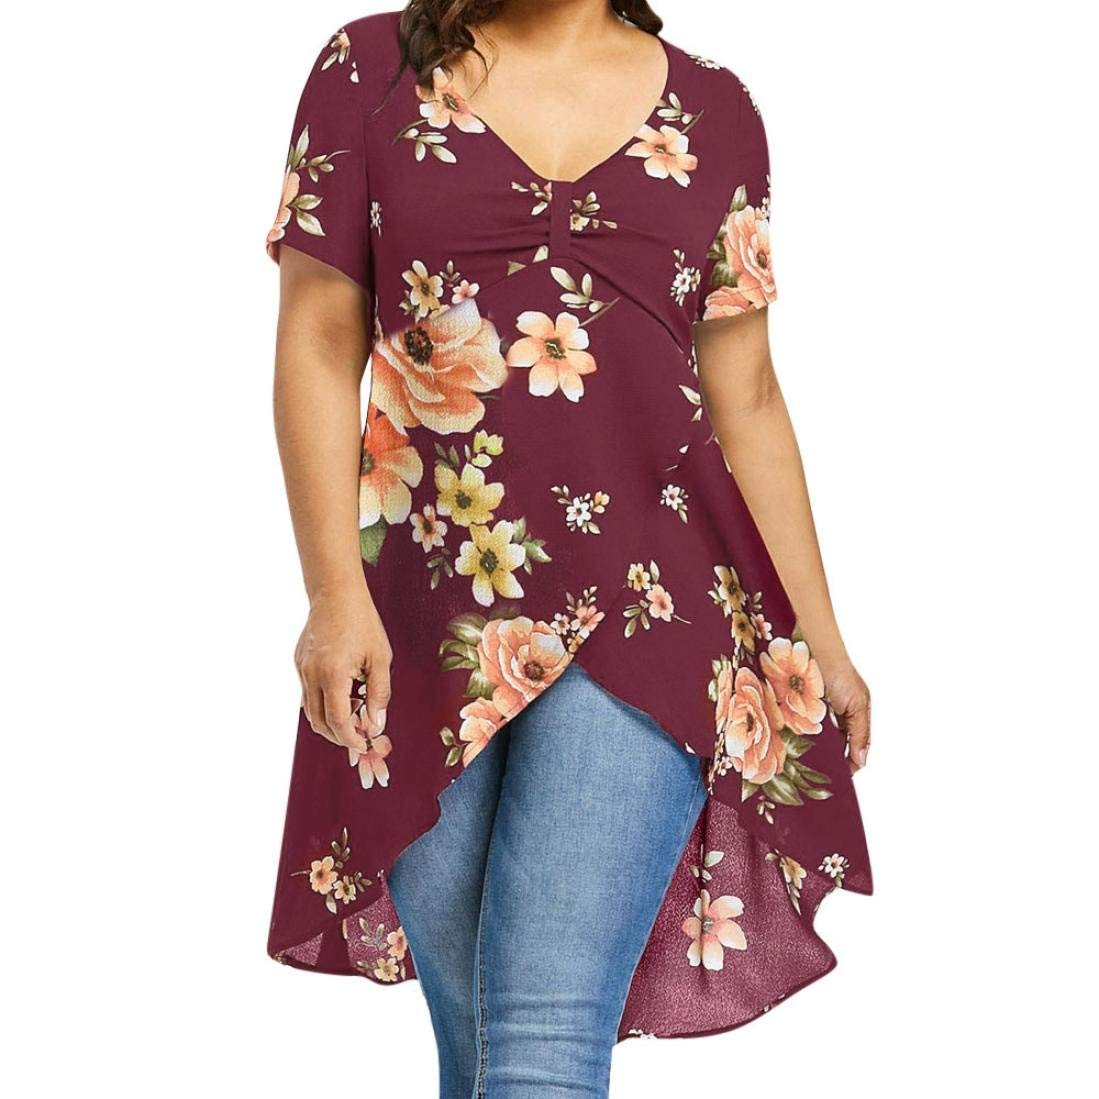 a1b642ebe1b64 Lelili Women Tunic Tops Plus Size Sexy Floral Print Short Sleeve V Neck  Ruched Cross Irregular Long Shirt Casual Blouse at Amazon Women s Clothing  store